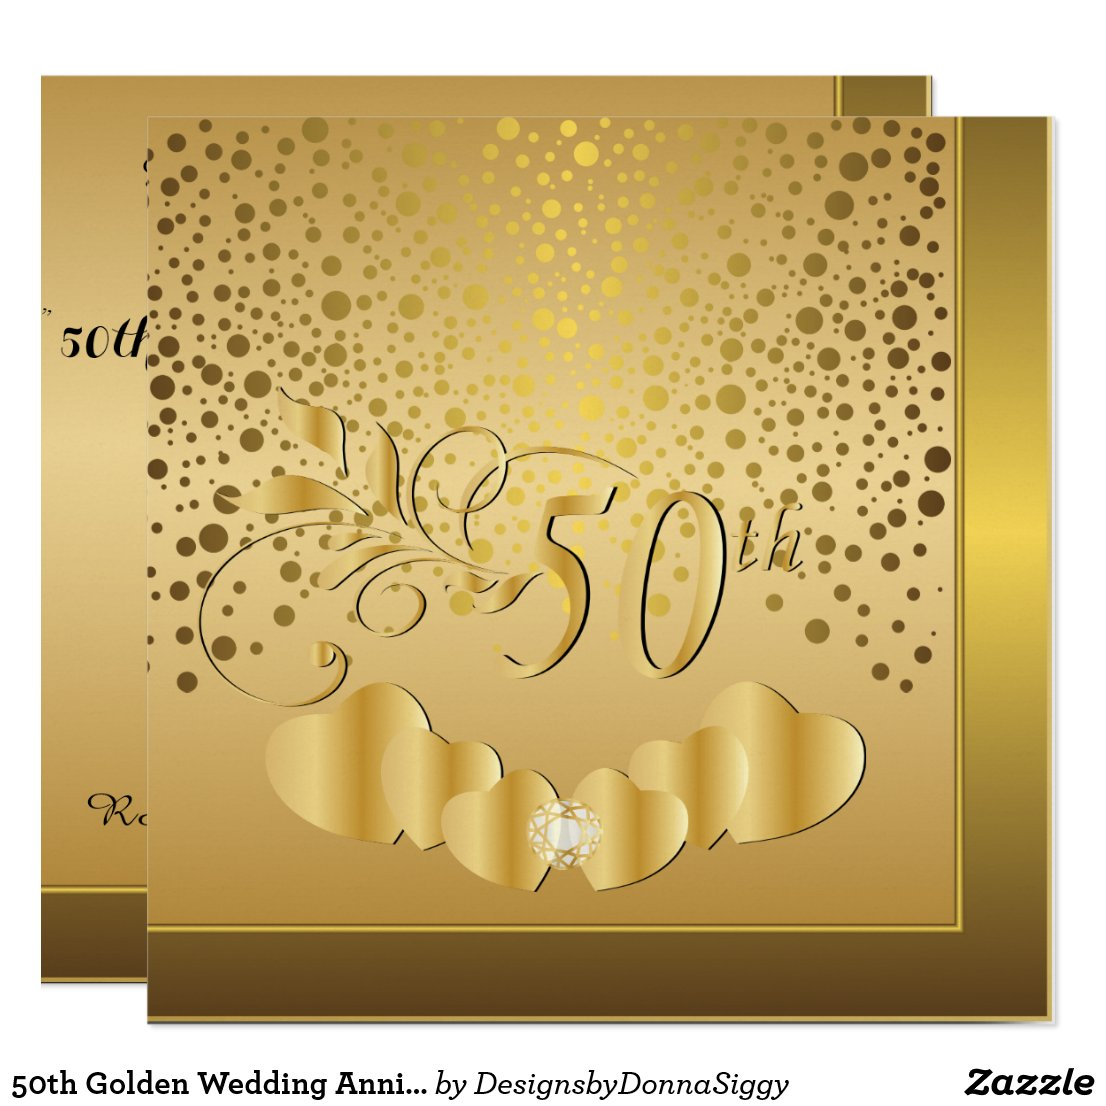 50th Golden Wedding Anniversary